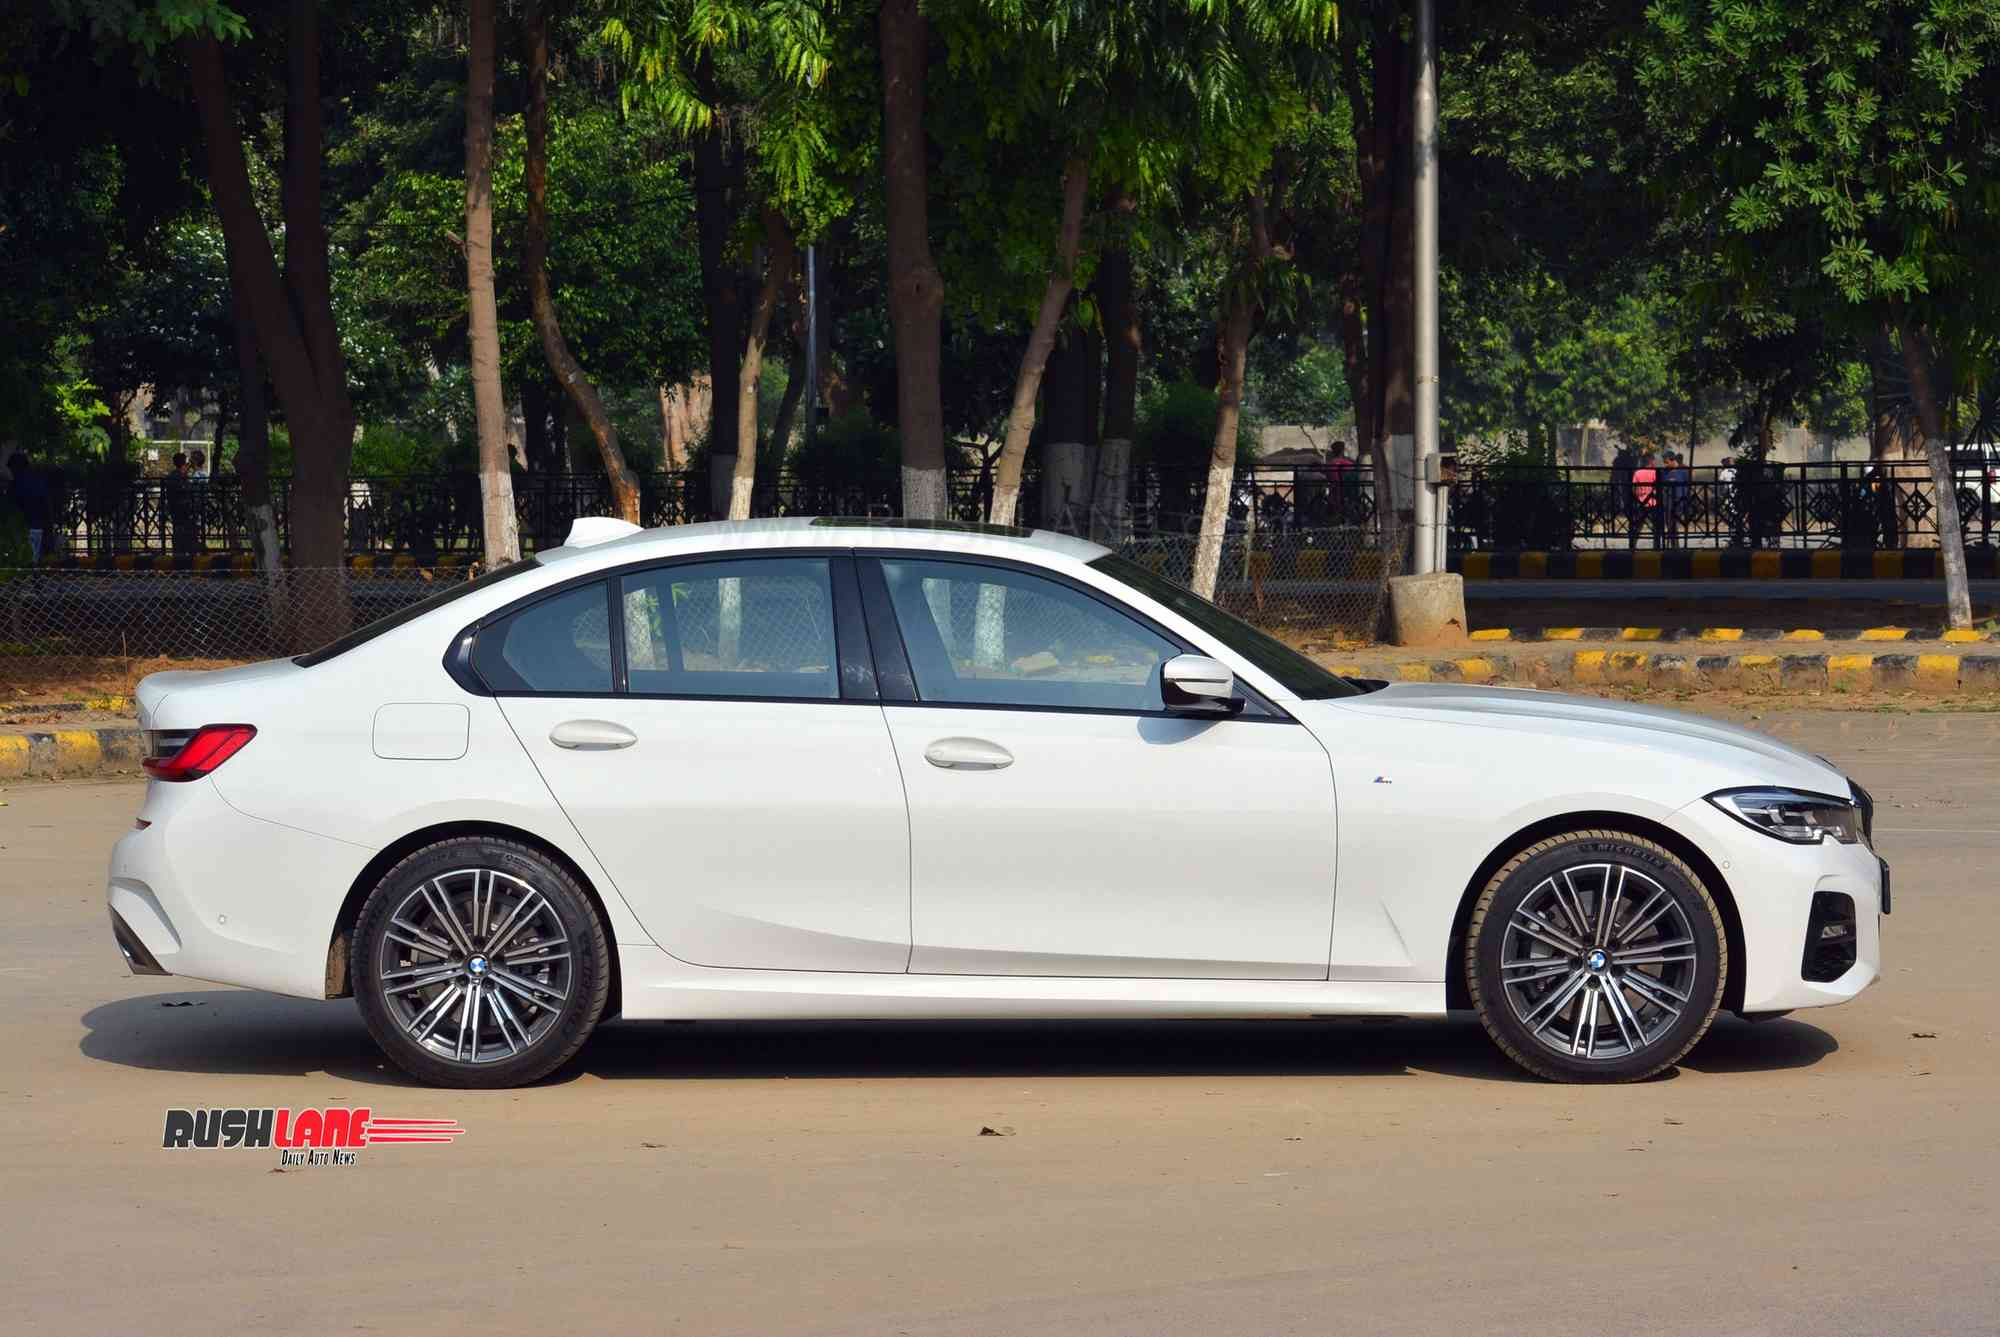 Bmw India Launches Bs6 Petrol For Entire Line Up Prices To Increase